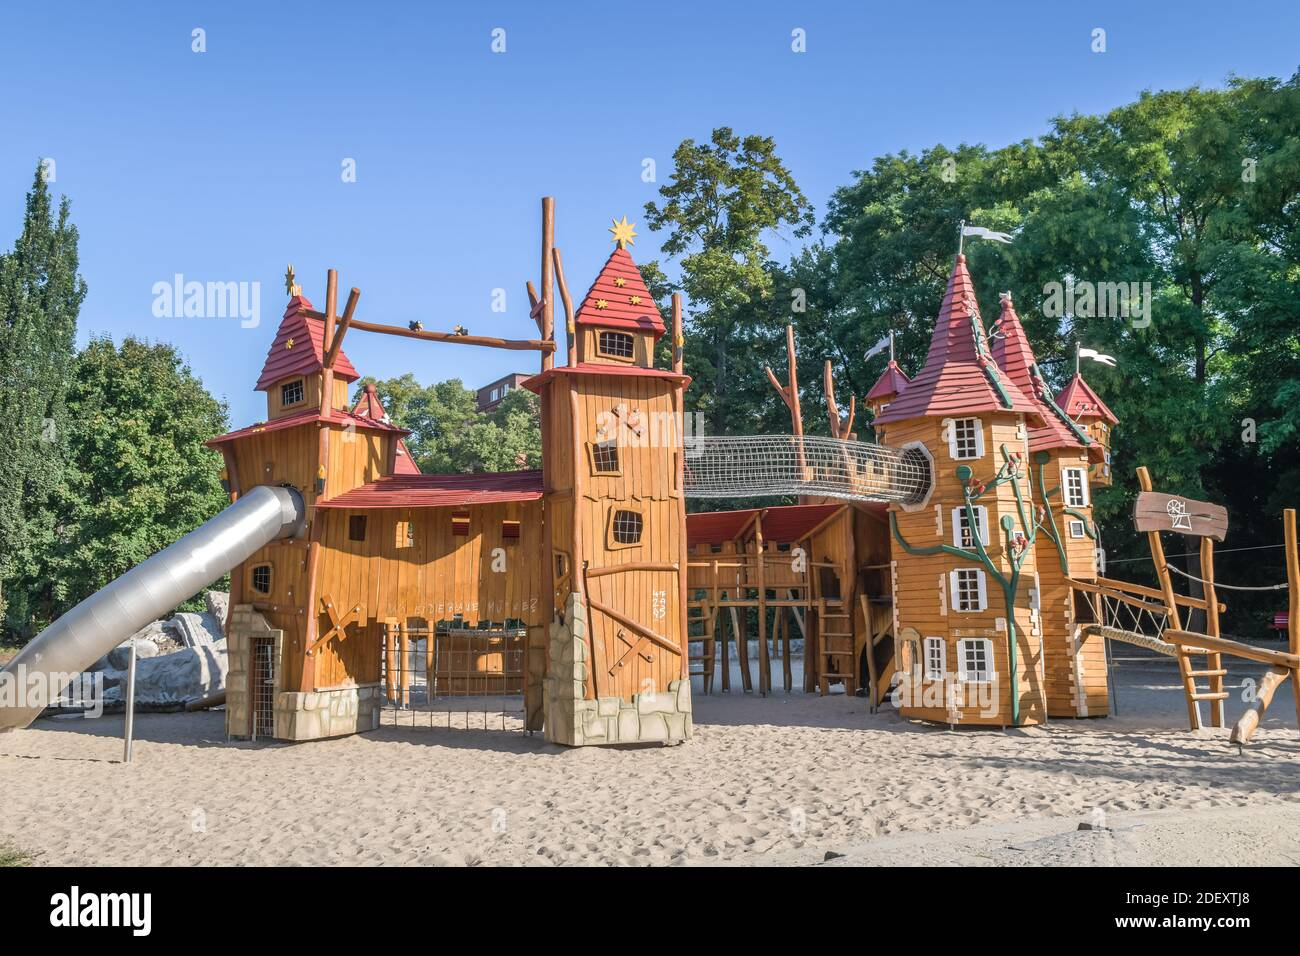 Page 2 Spielplatz High Resolution Stock Photography And Images Alamy